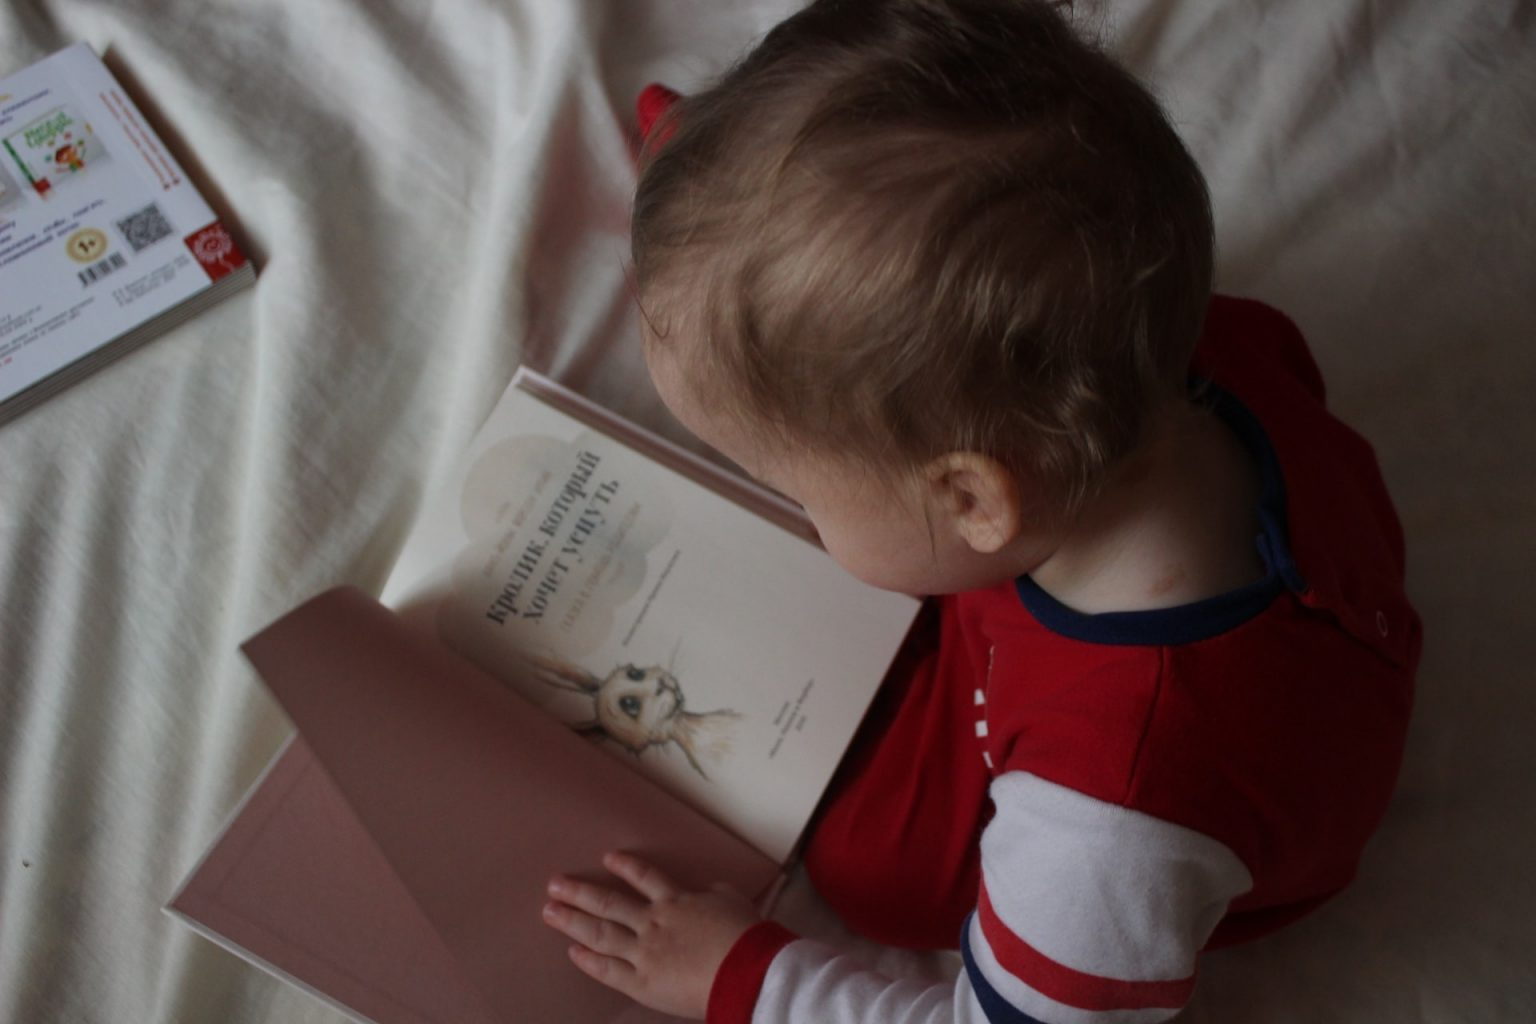 10 Best Books for 1-Year-Olds 2021